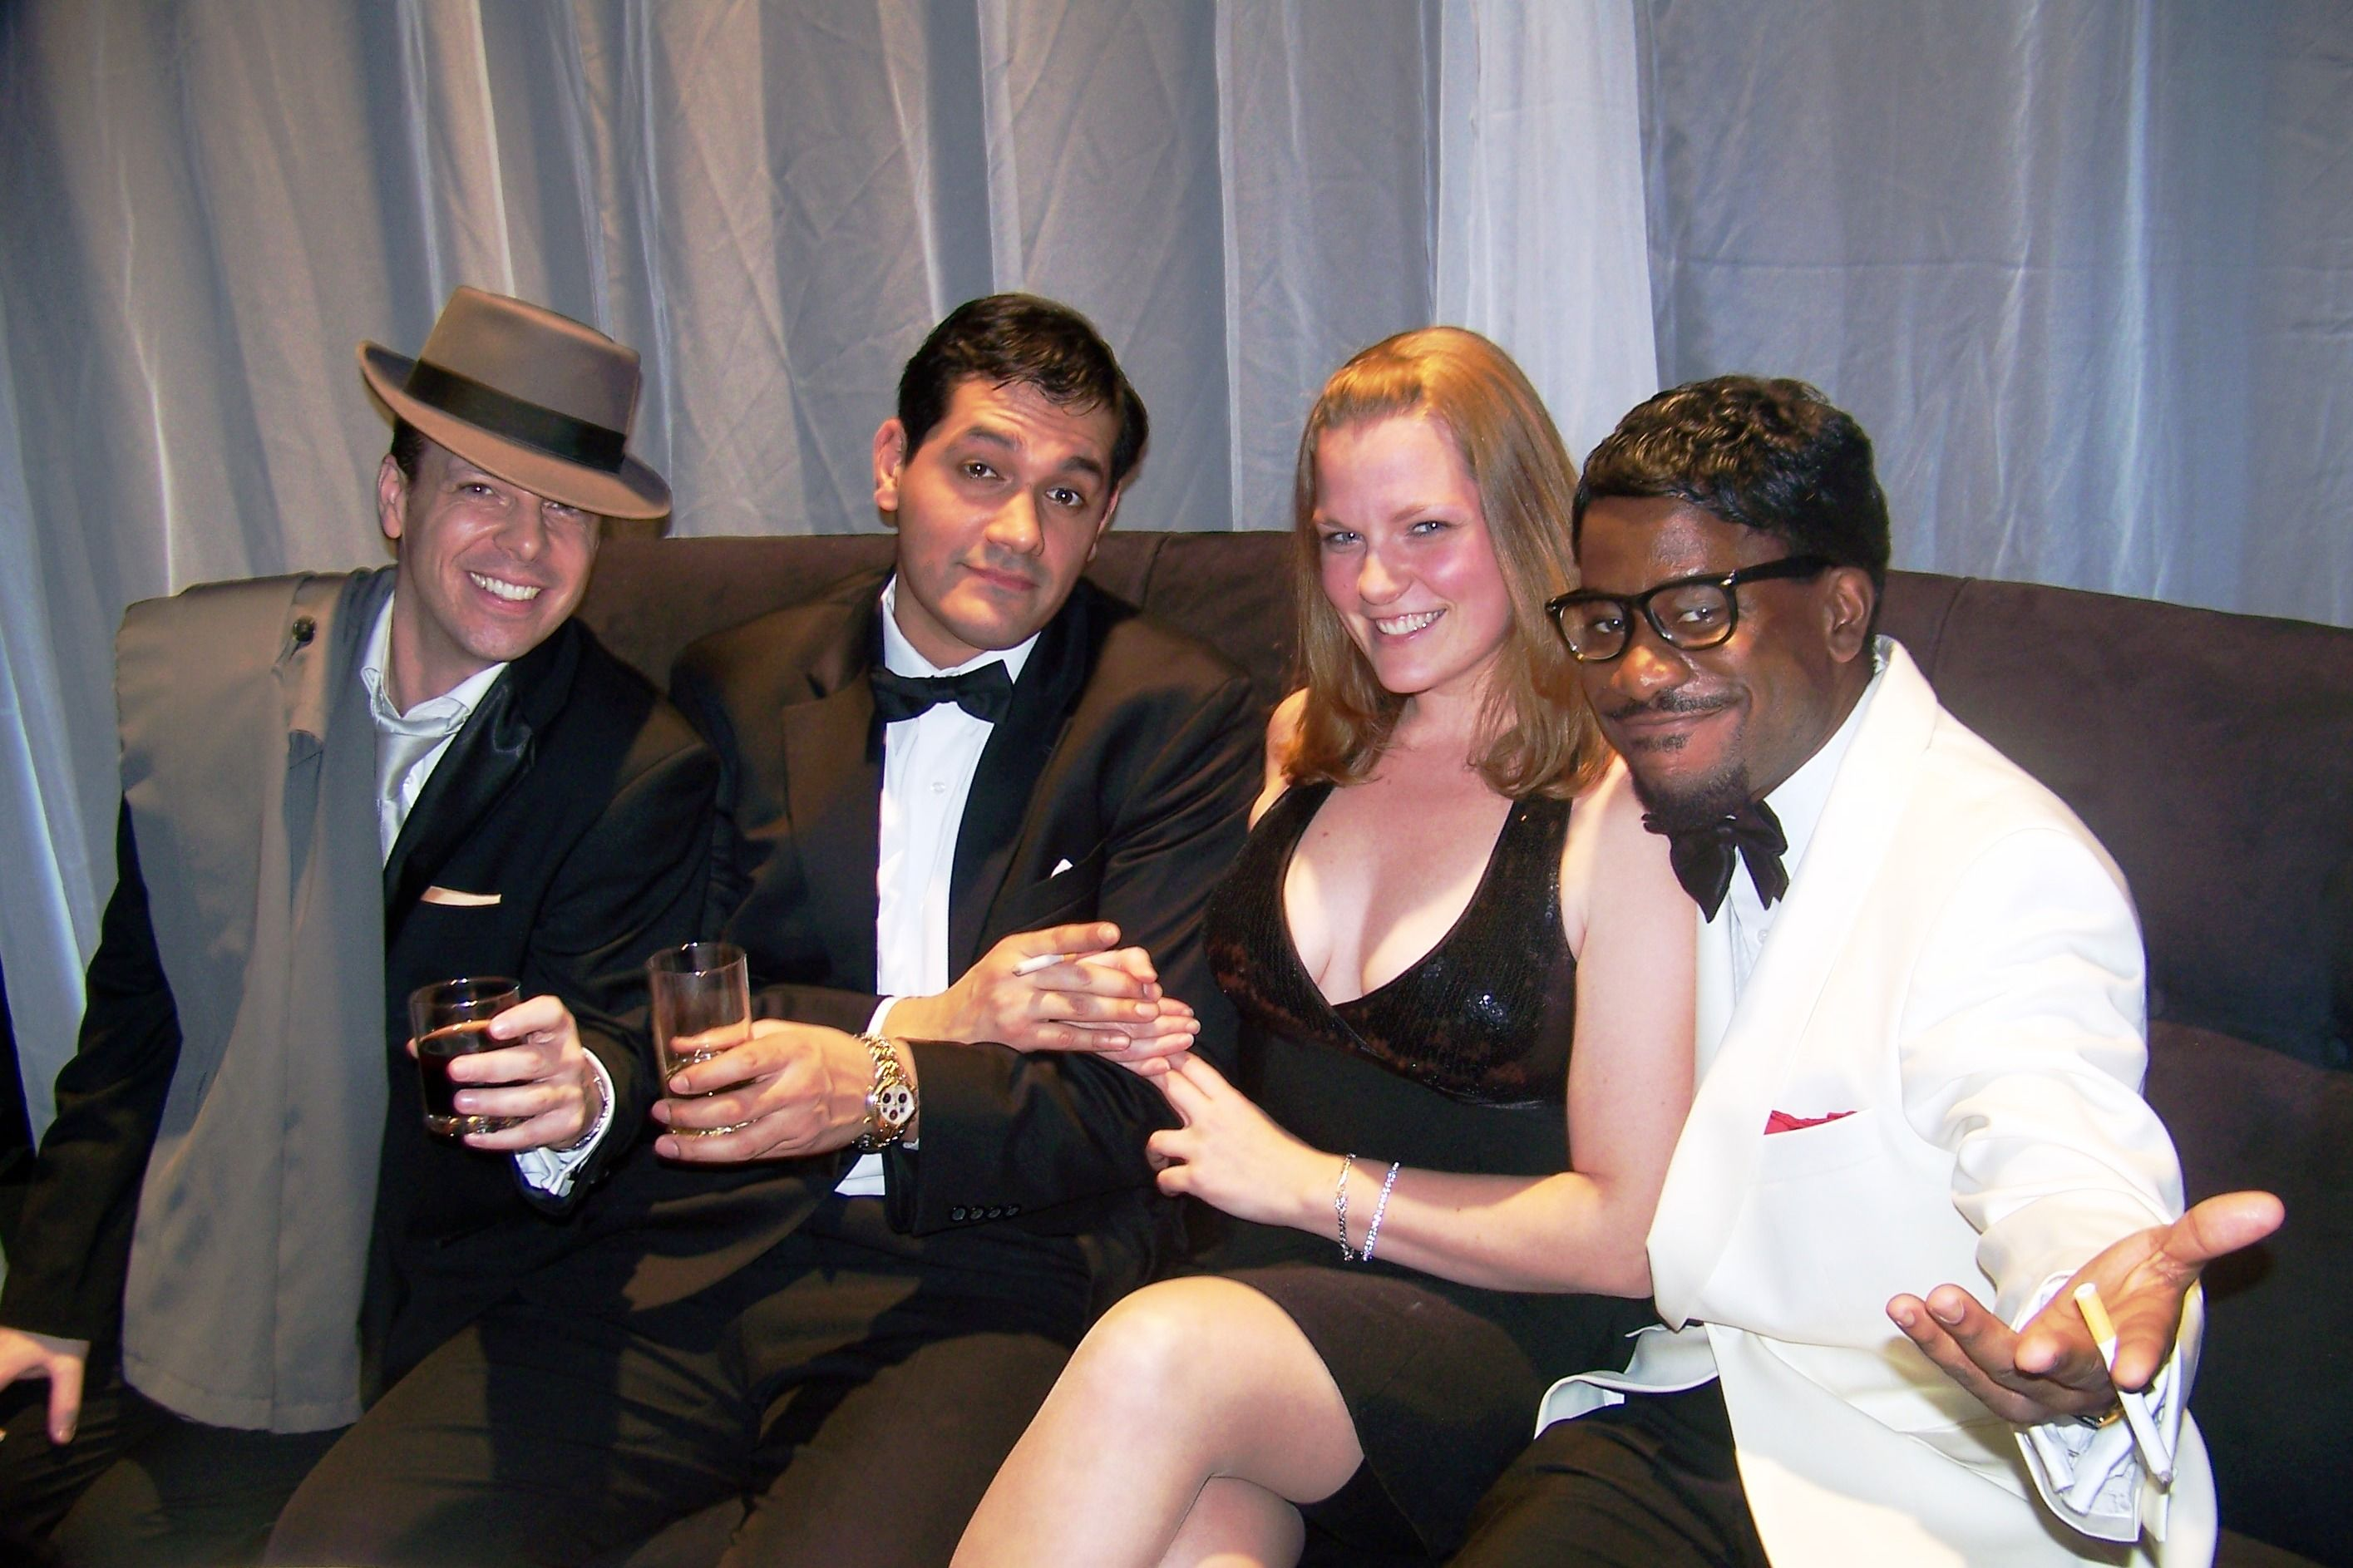 EBE Celebrity Impersonators Wowed This Guest At Rat Pack Themed